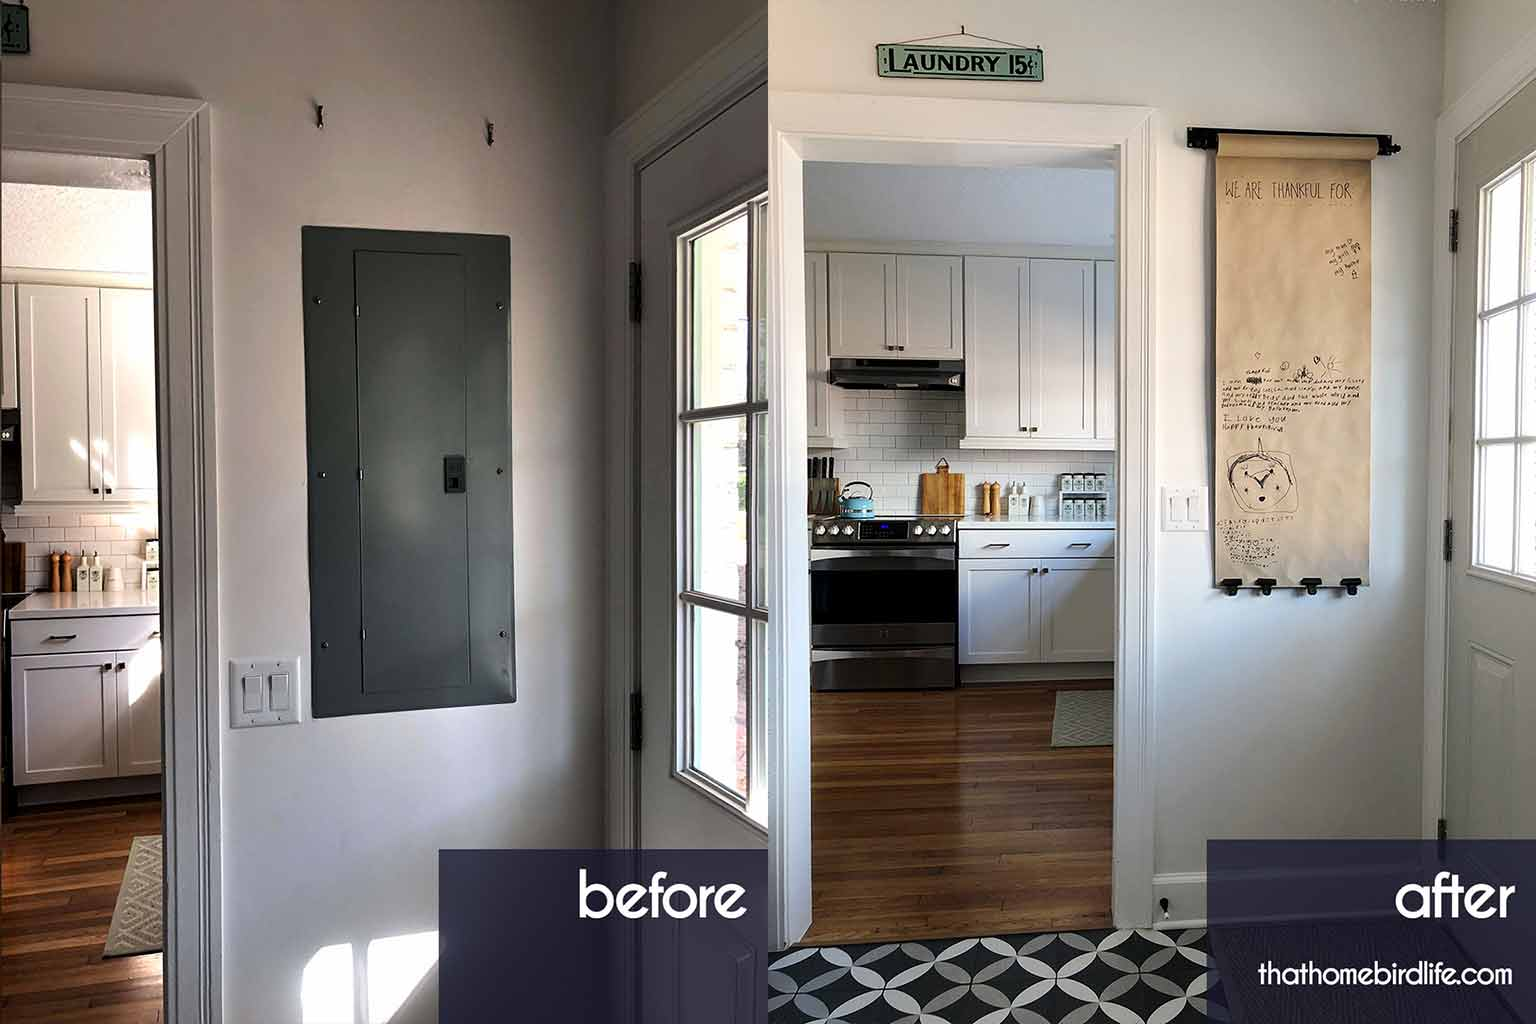 Before and after shots - Covering up an electrical panel - That Homebird Life Blog